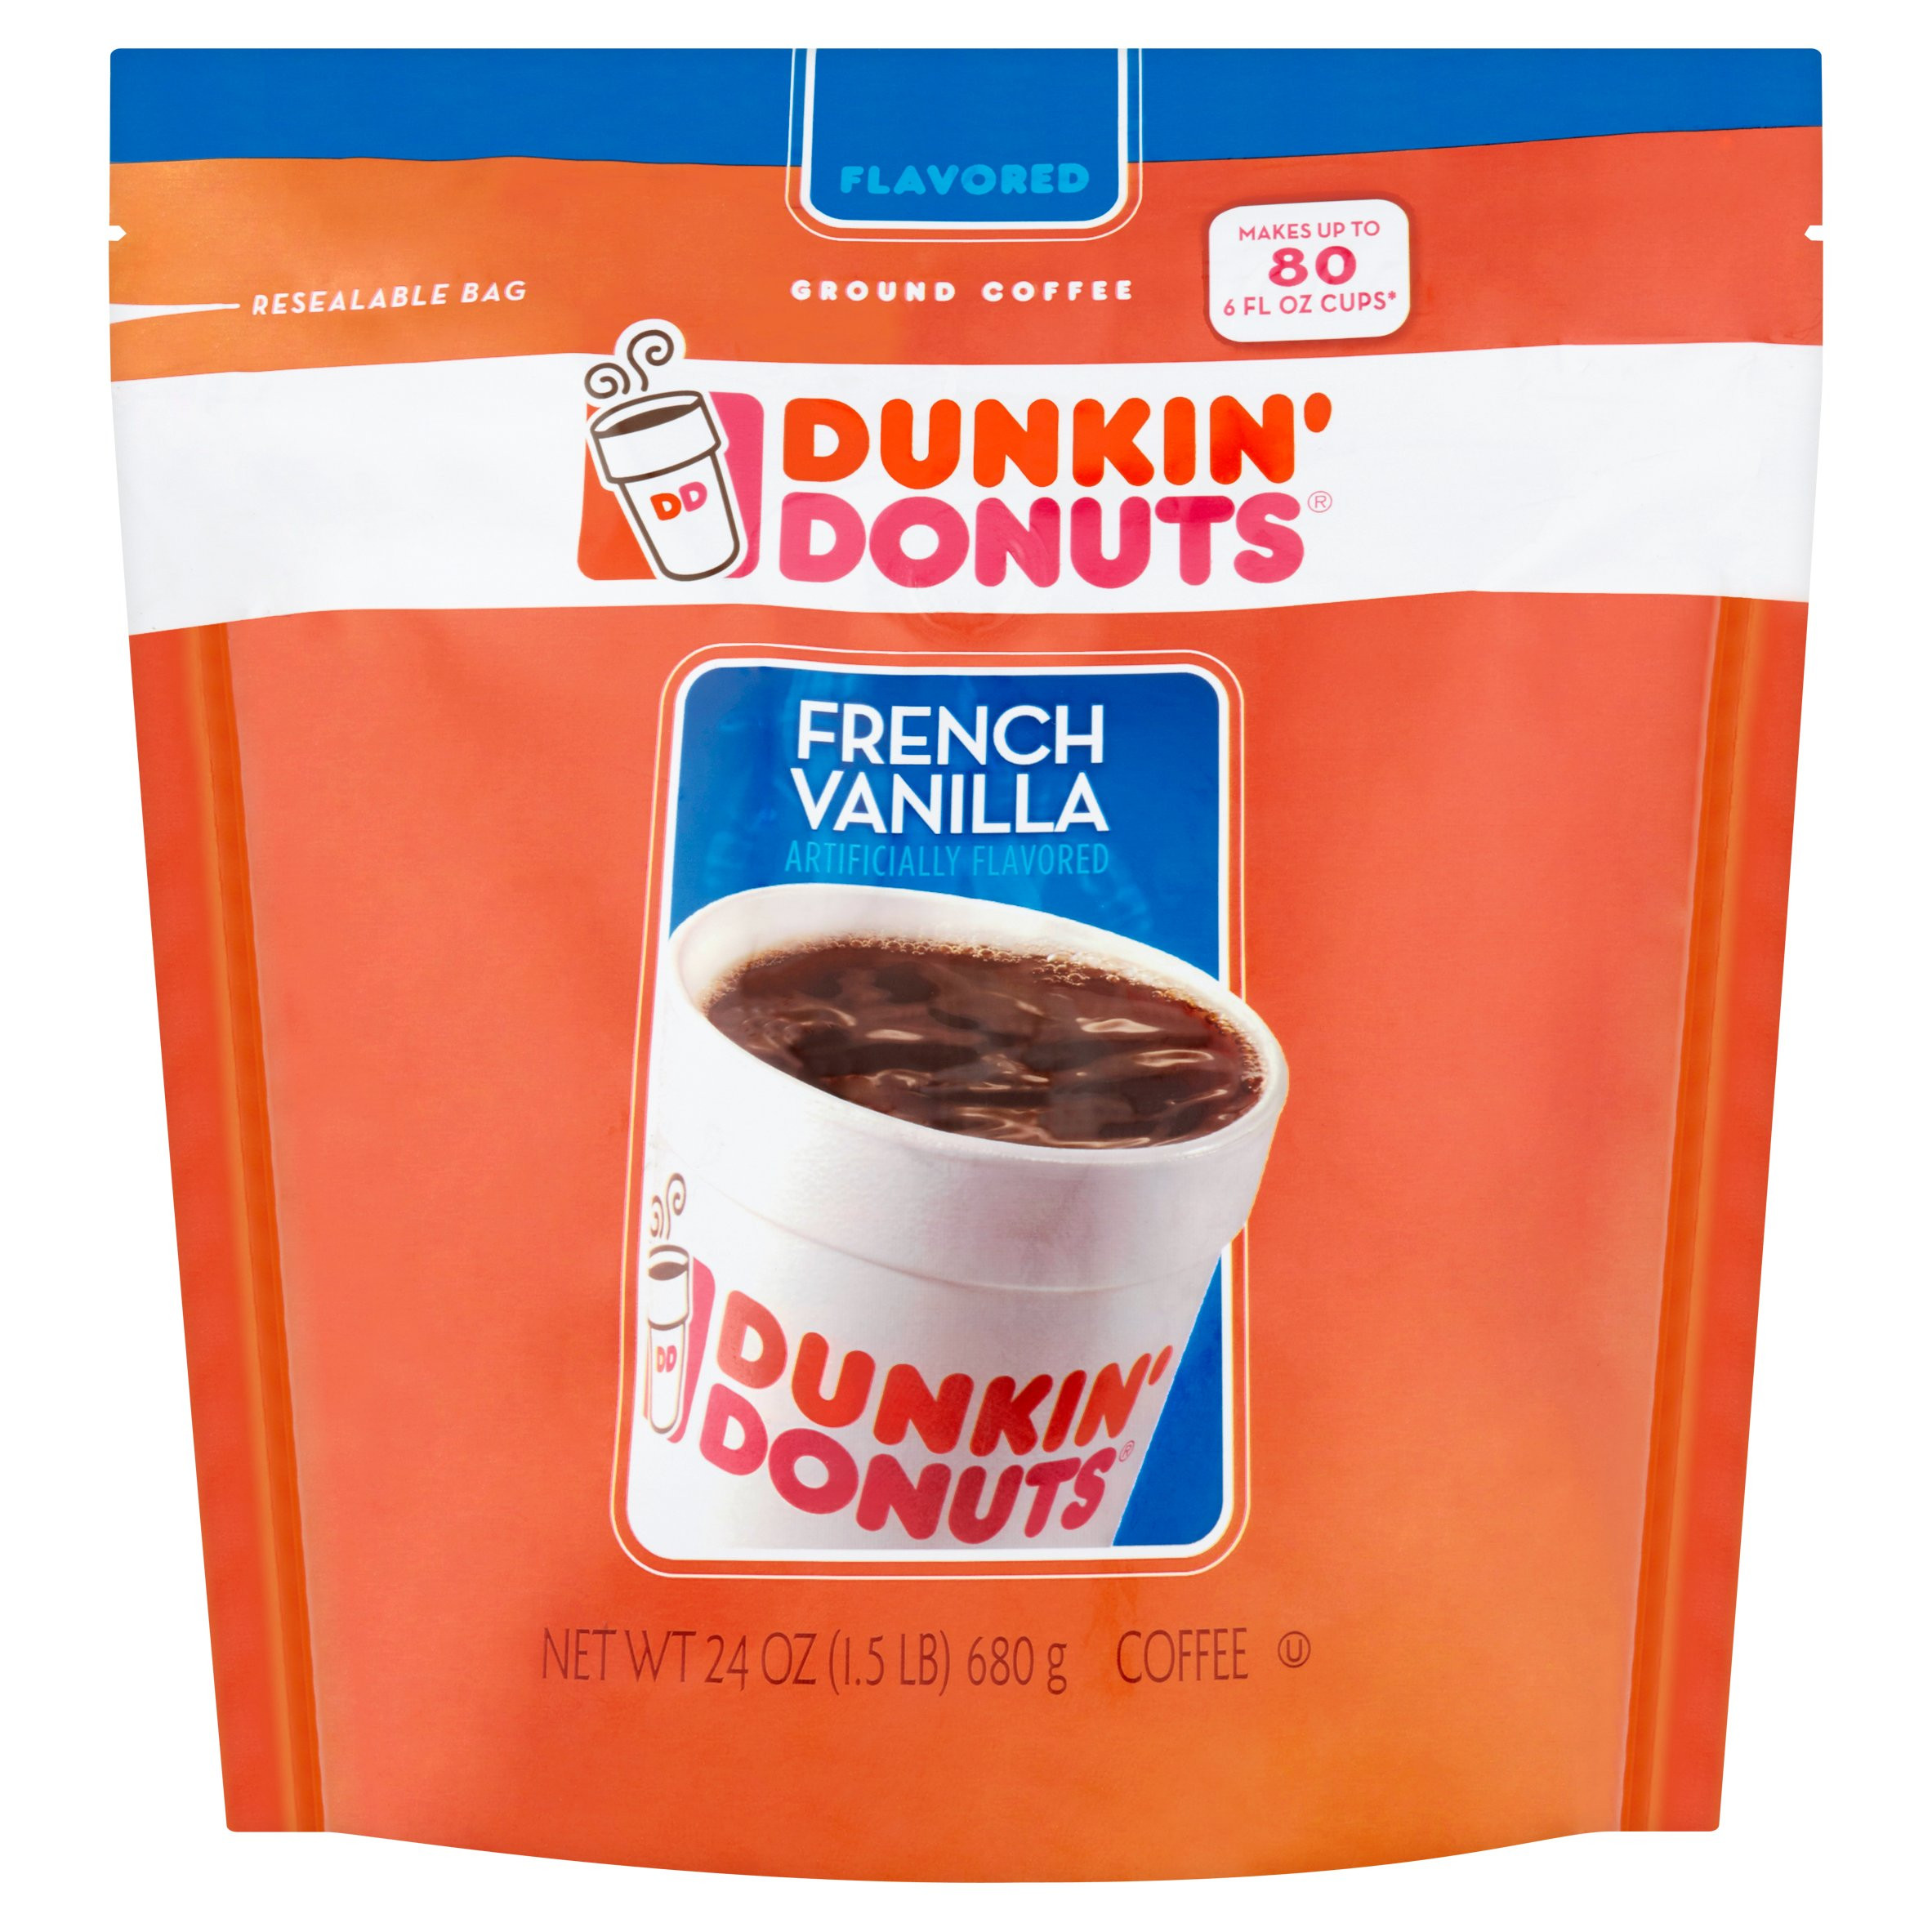 Earheart Healthy Weight Loss Recipes  Dunkin Donuts Flavored Coffee Nutrition Facts – Blog Dandk